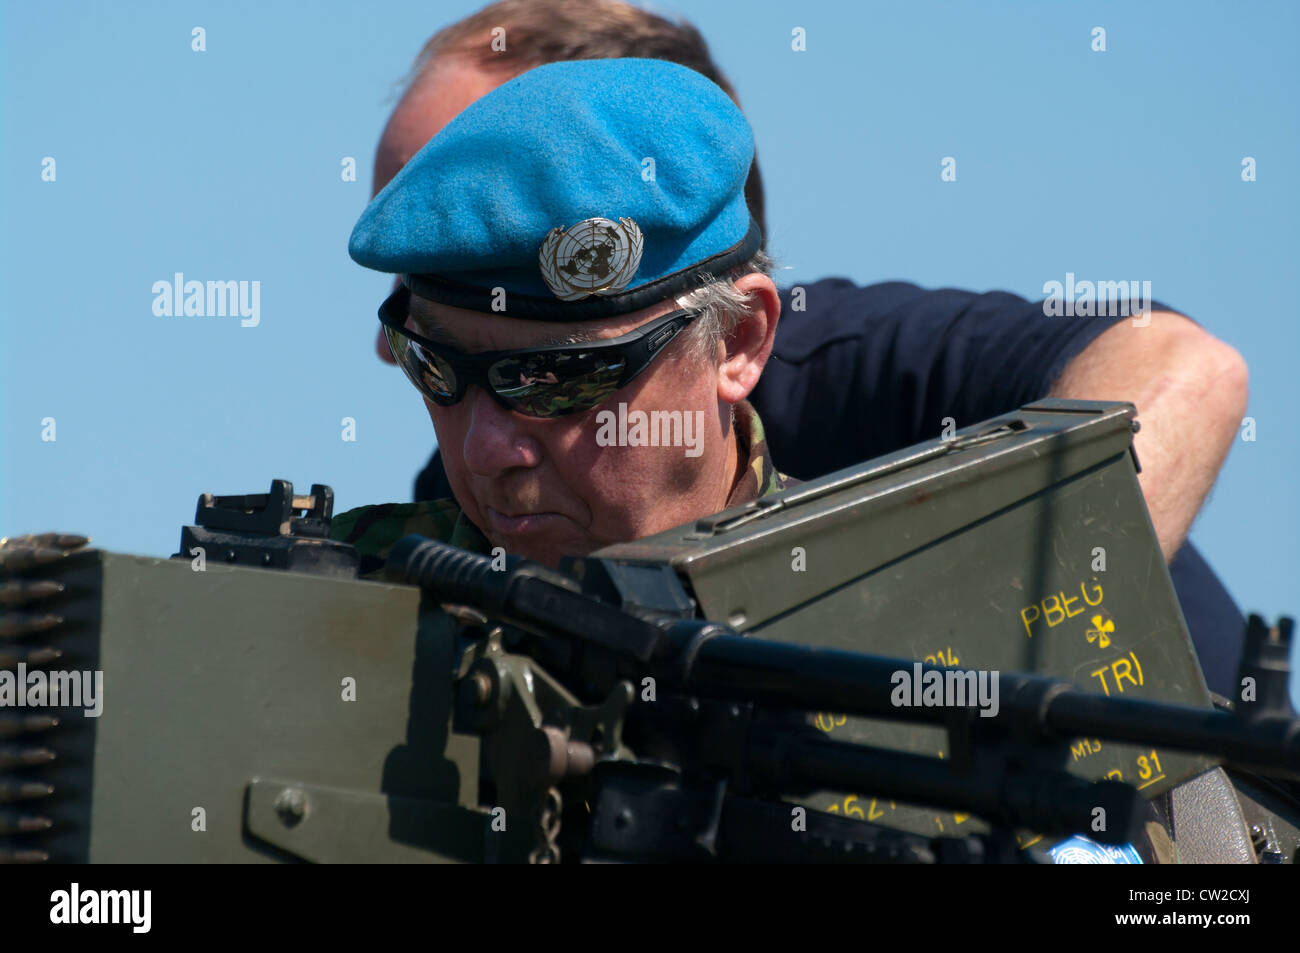 aa7602ab30560 Soldier Wearing A United Nations Peacekeeping Force Beret - Stock Image